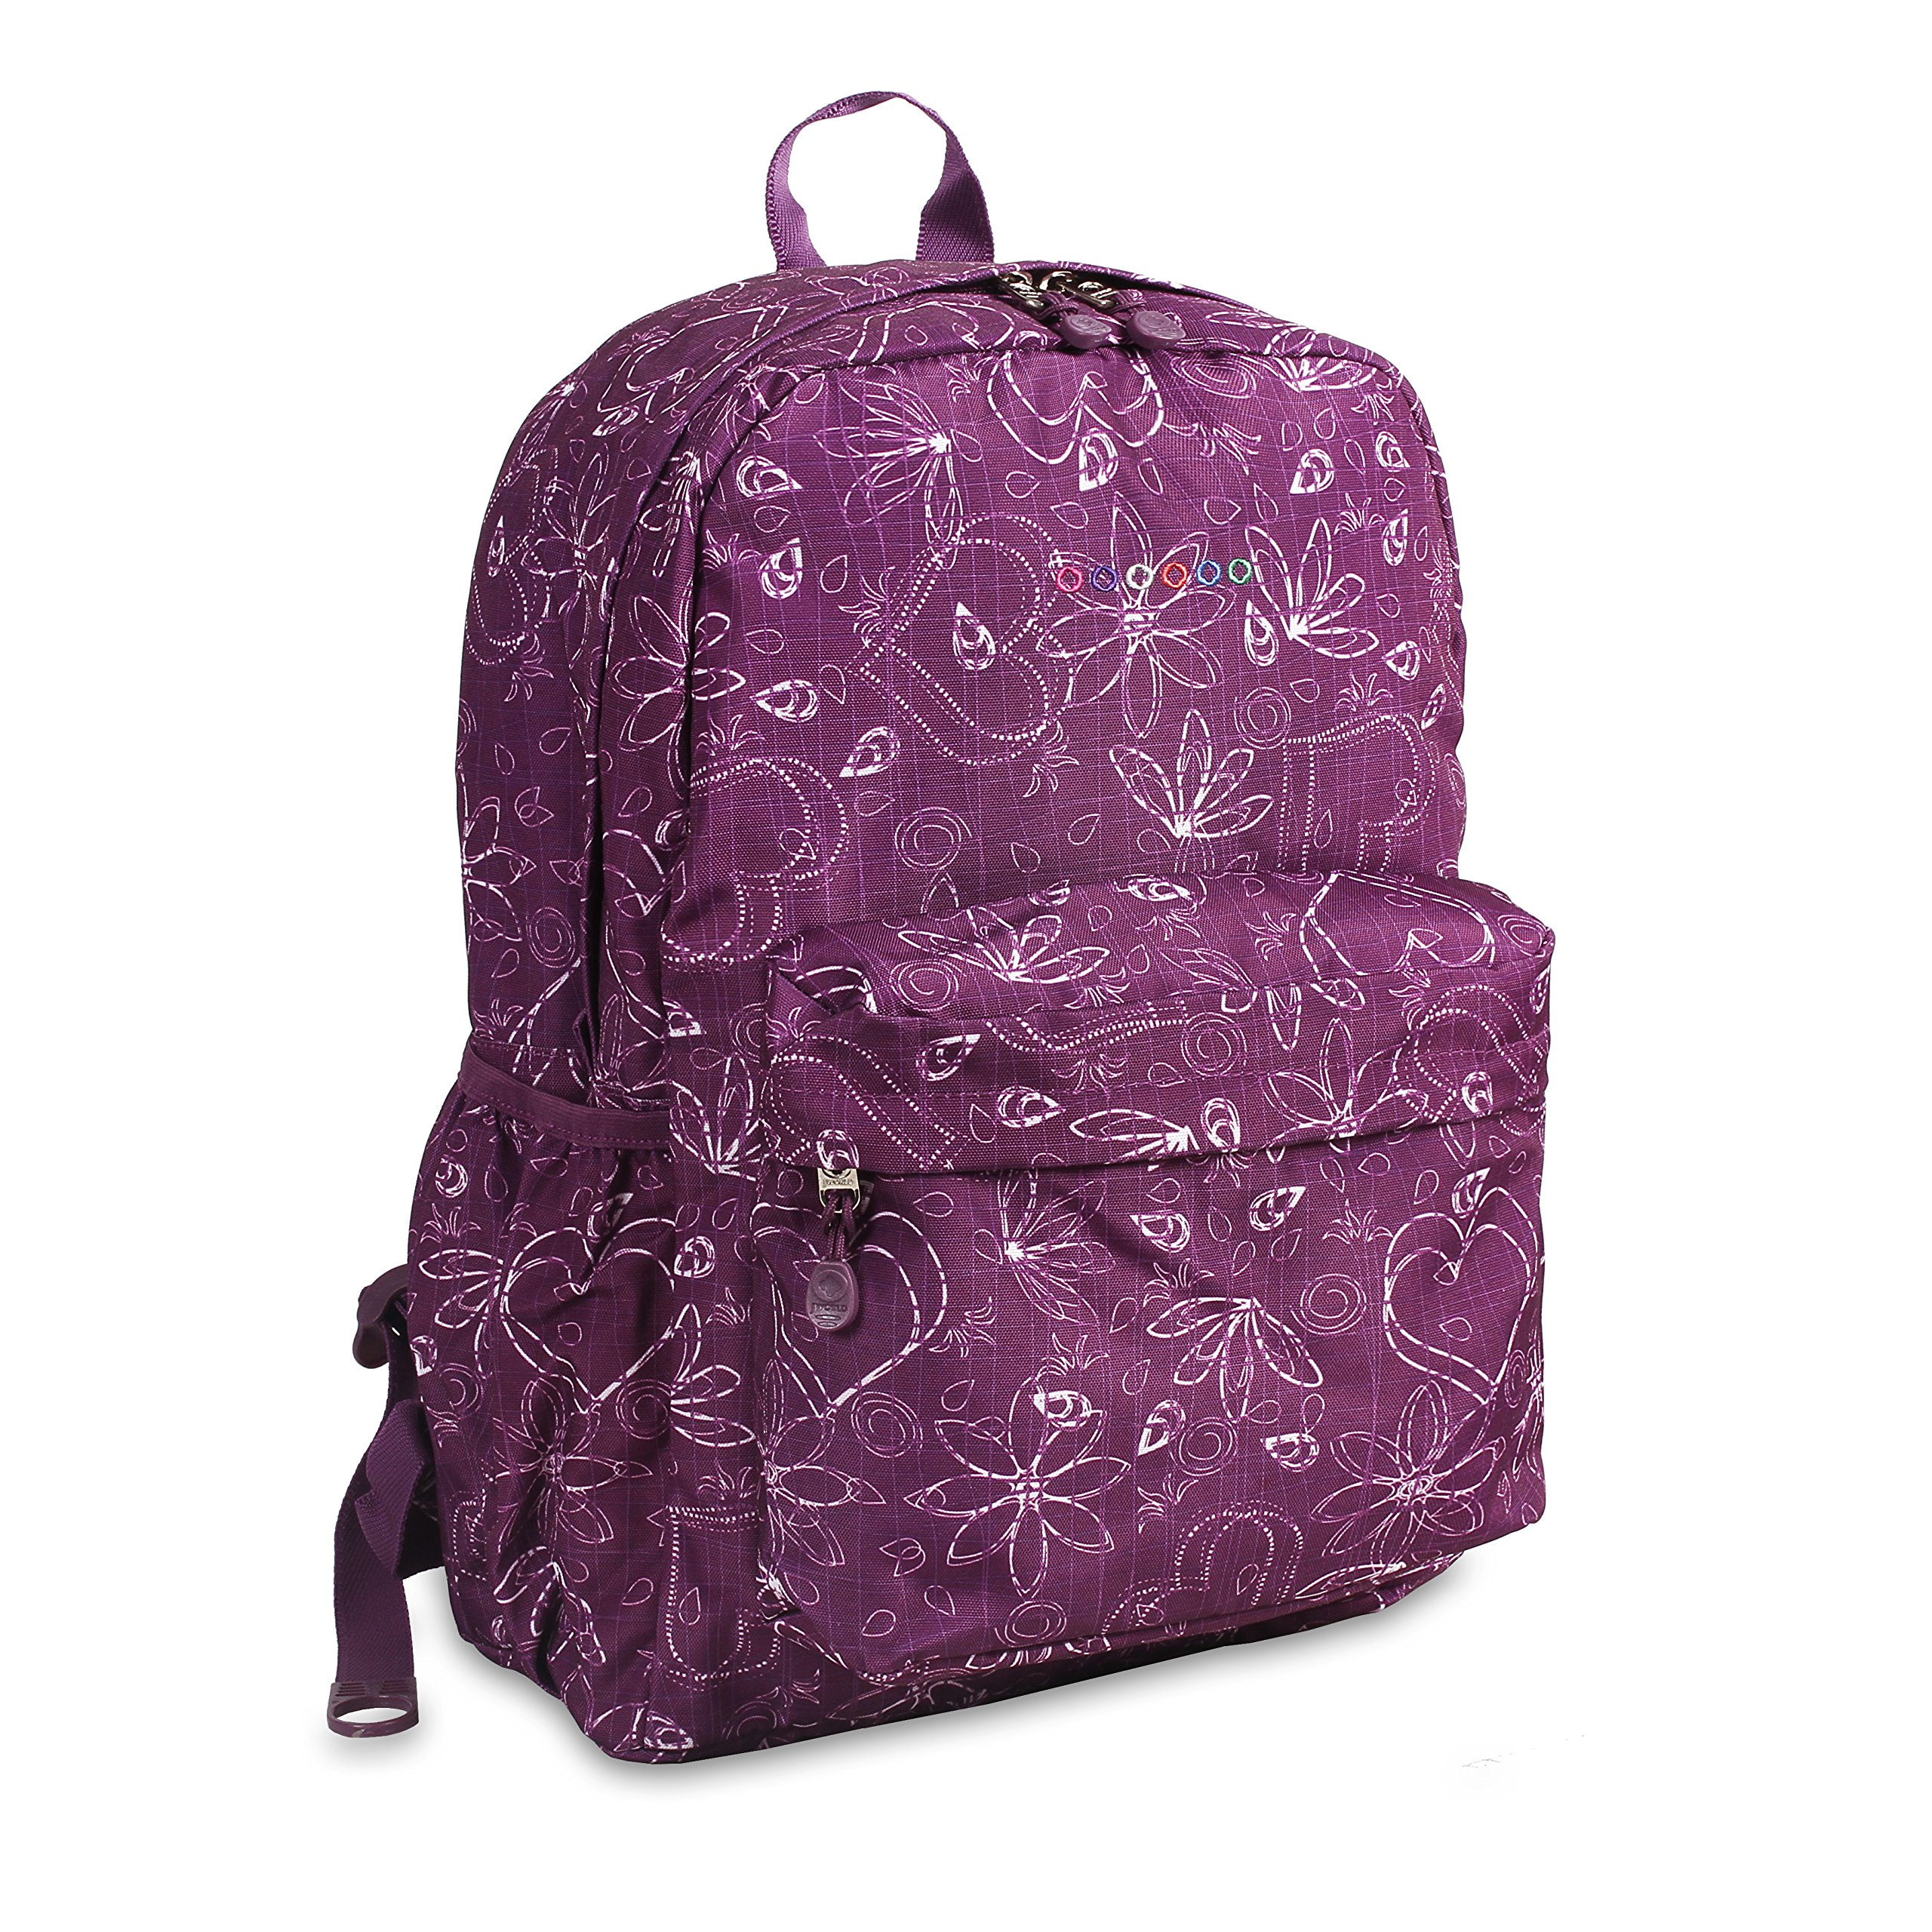 J World New York Oz Backpack, Love Purple by J World New York (Image #1)